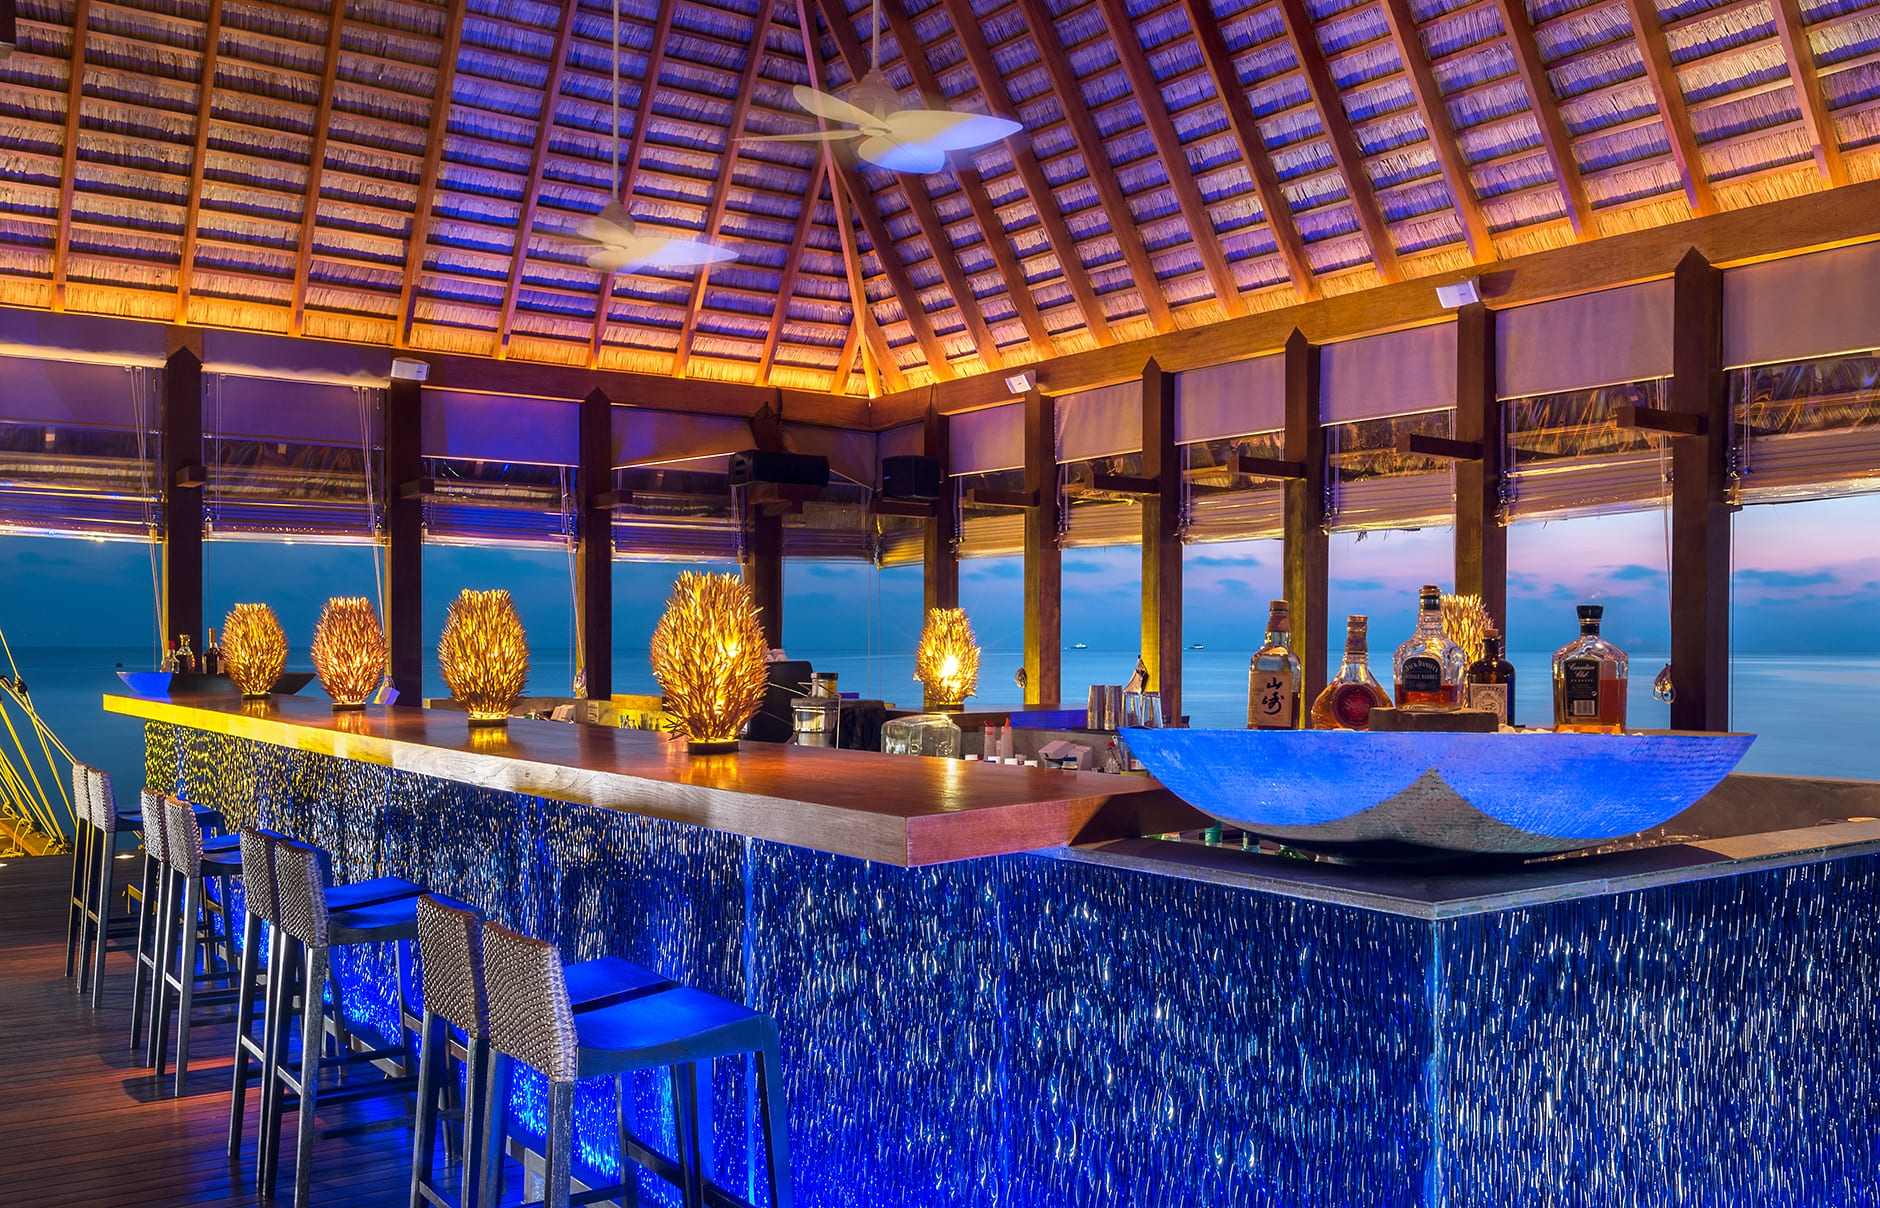 Sip Lounge. W Maldives, Fesdu Island, Maldives. Hotel Review by TravelPlusStyle. Photo © Marriott International